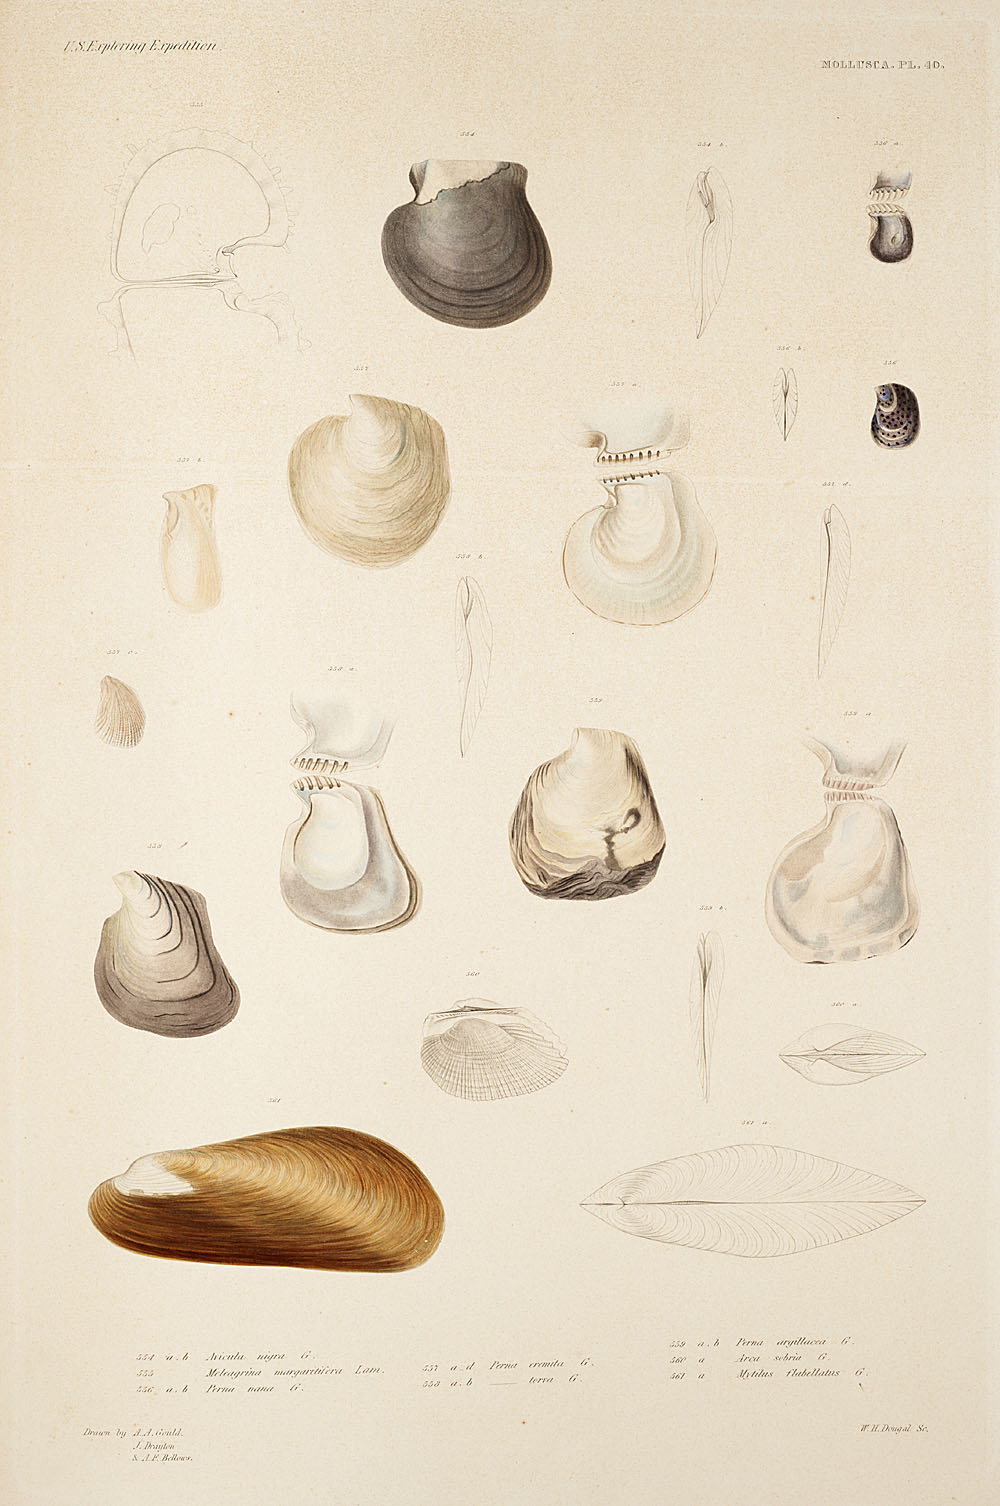 Mollusca, Pl. 40,  Image number:sil19-18-101b